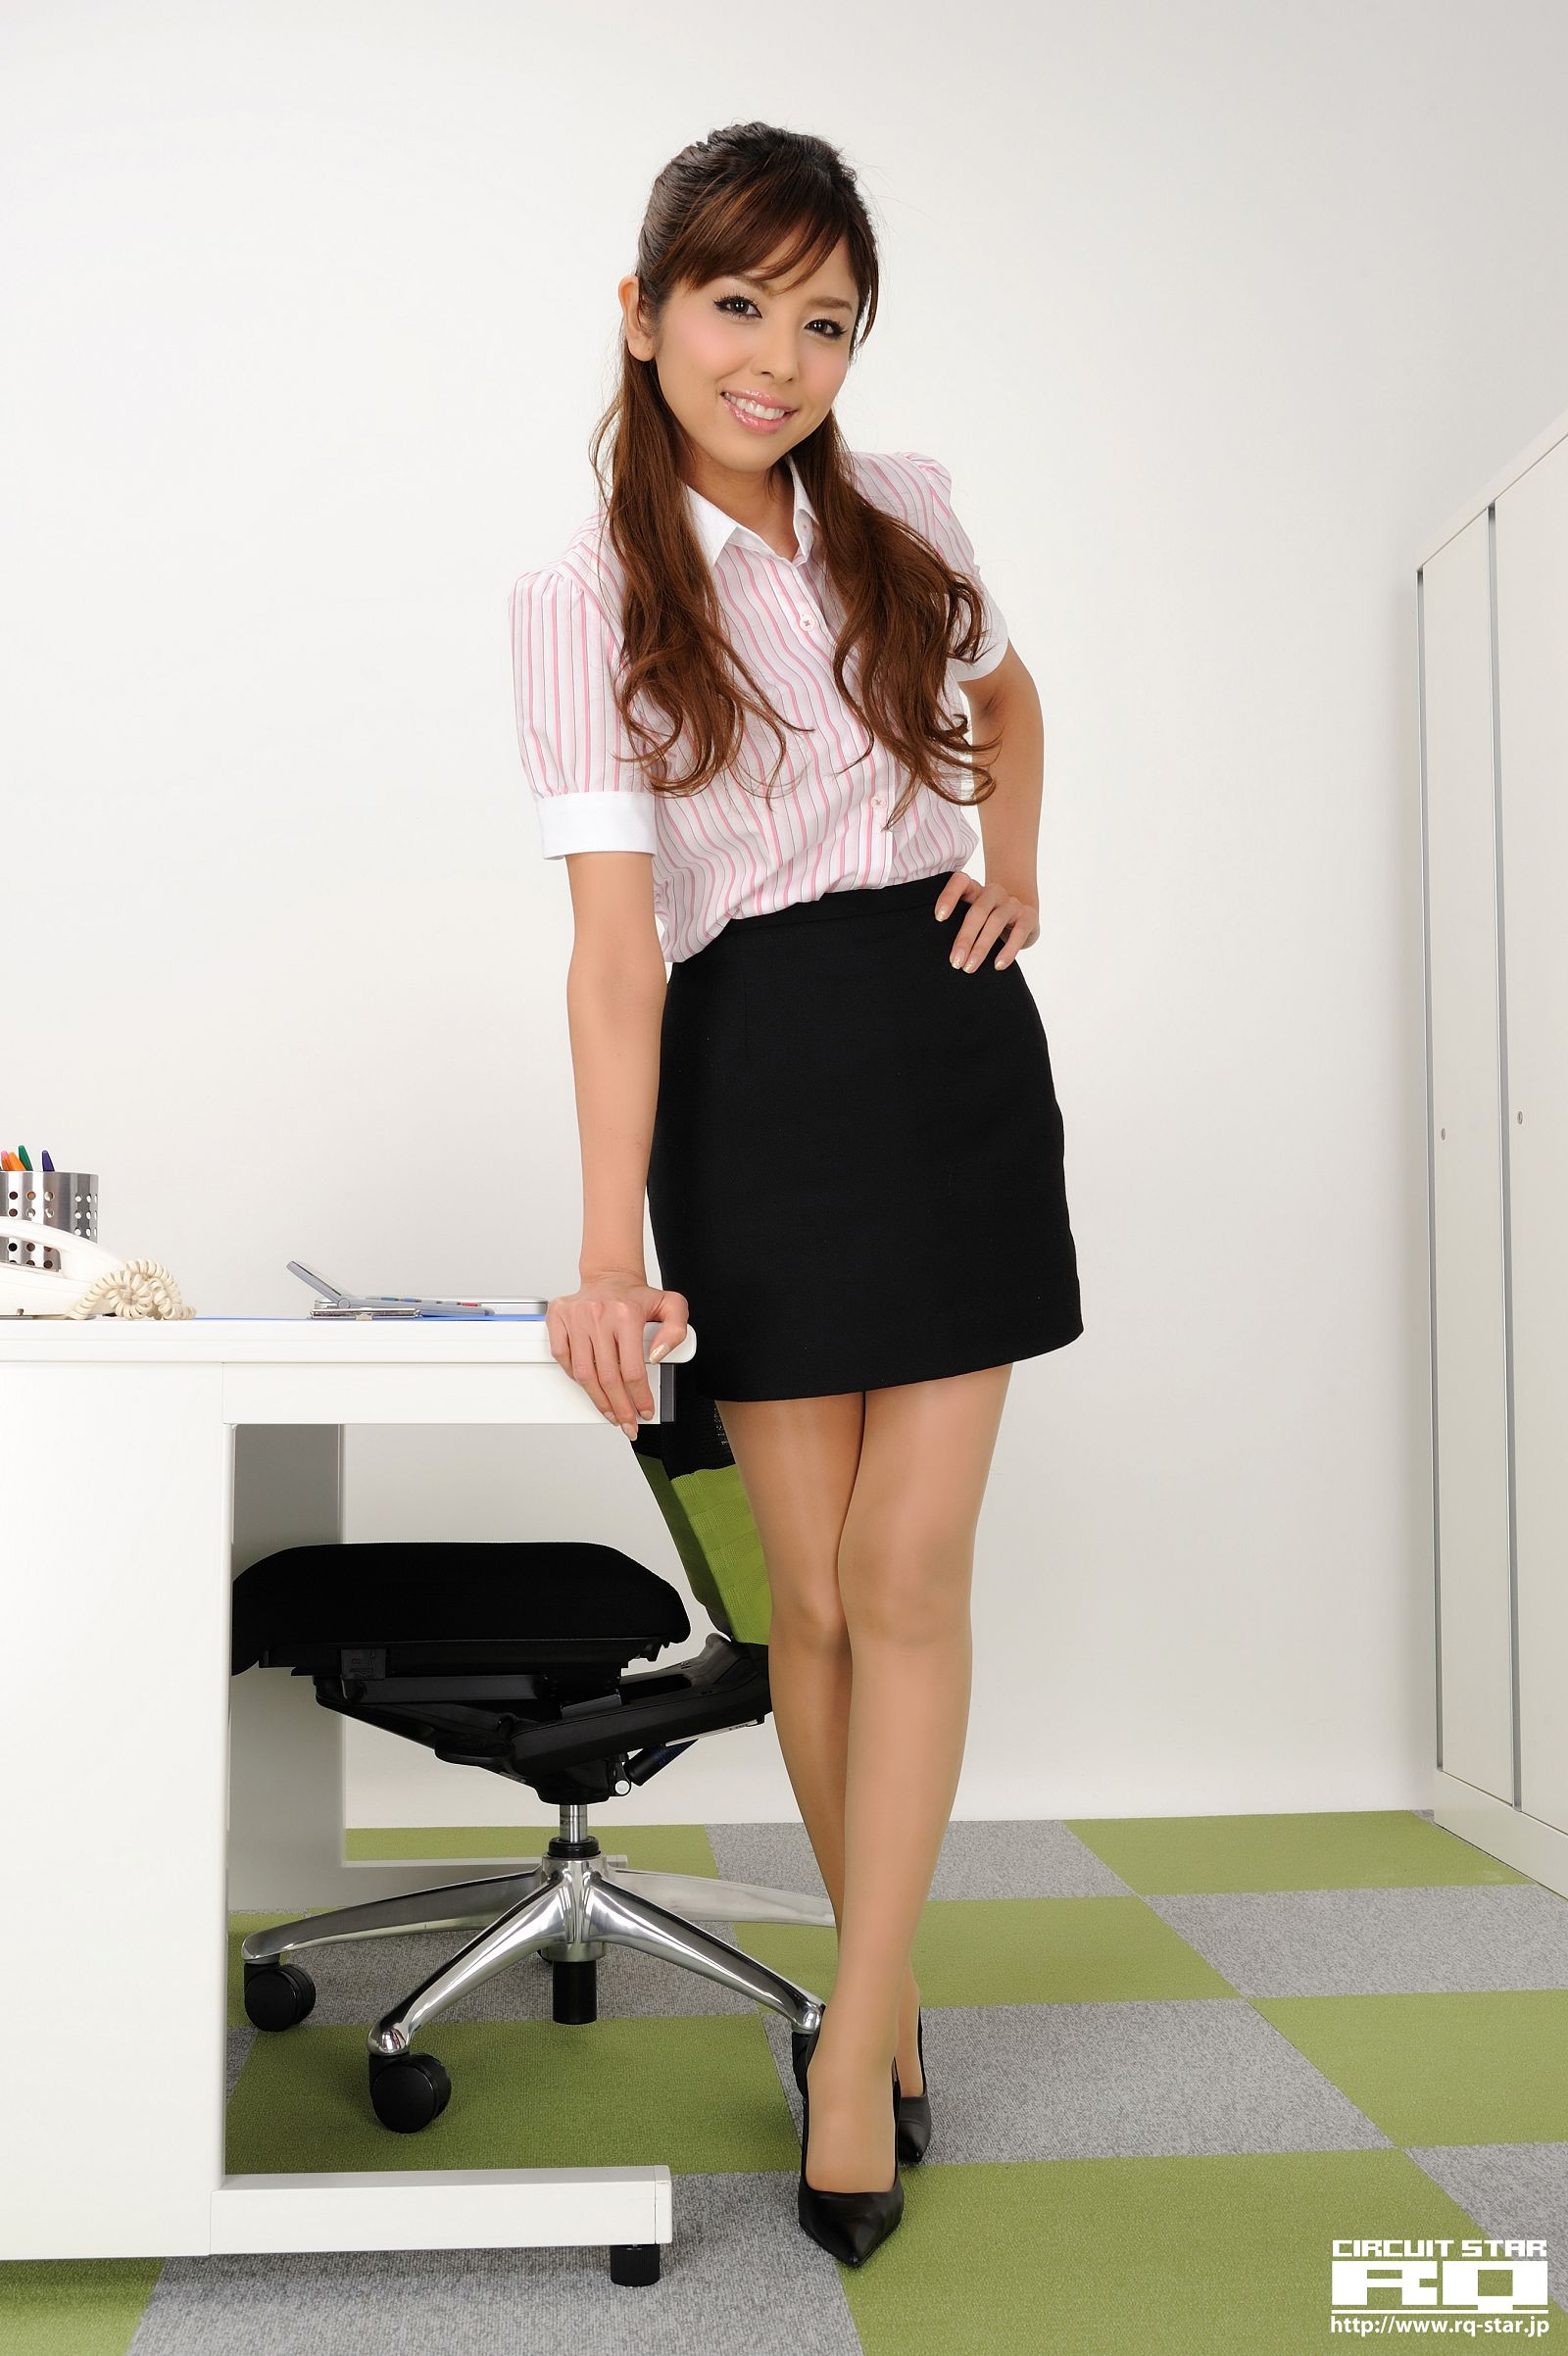 [RQ STAR美女] NO.0292 Yukari Amano 天野由加里 Office Lady[110P] RQ STAR 第1张